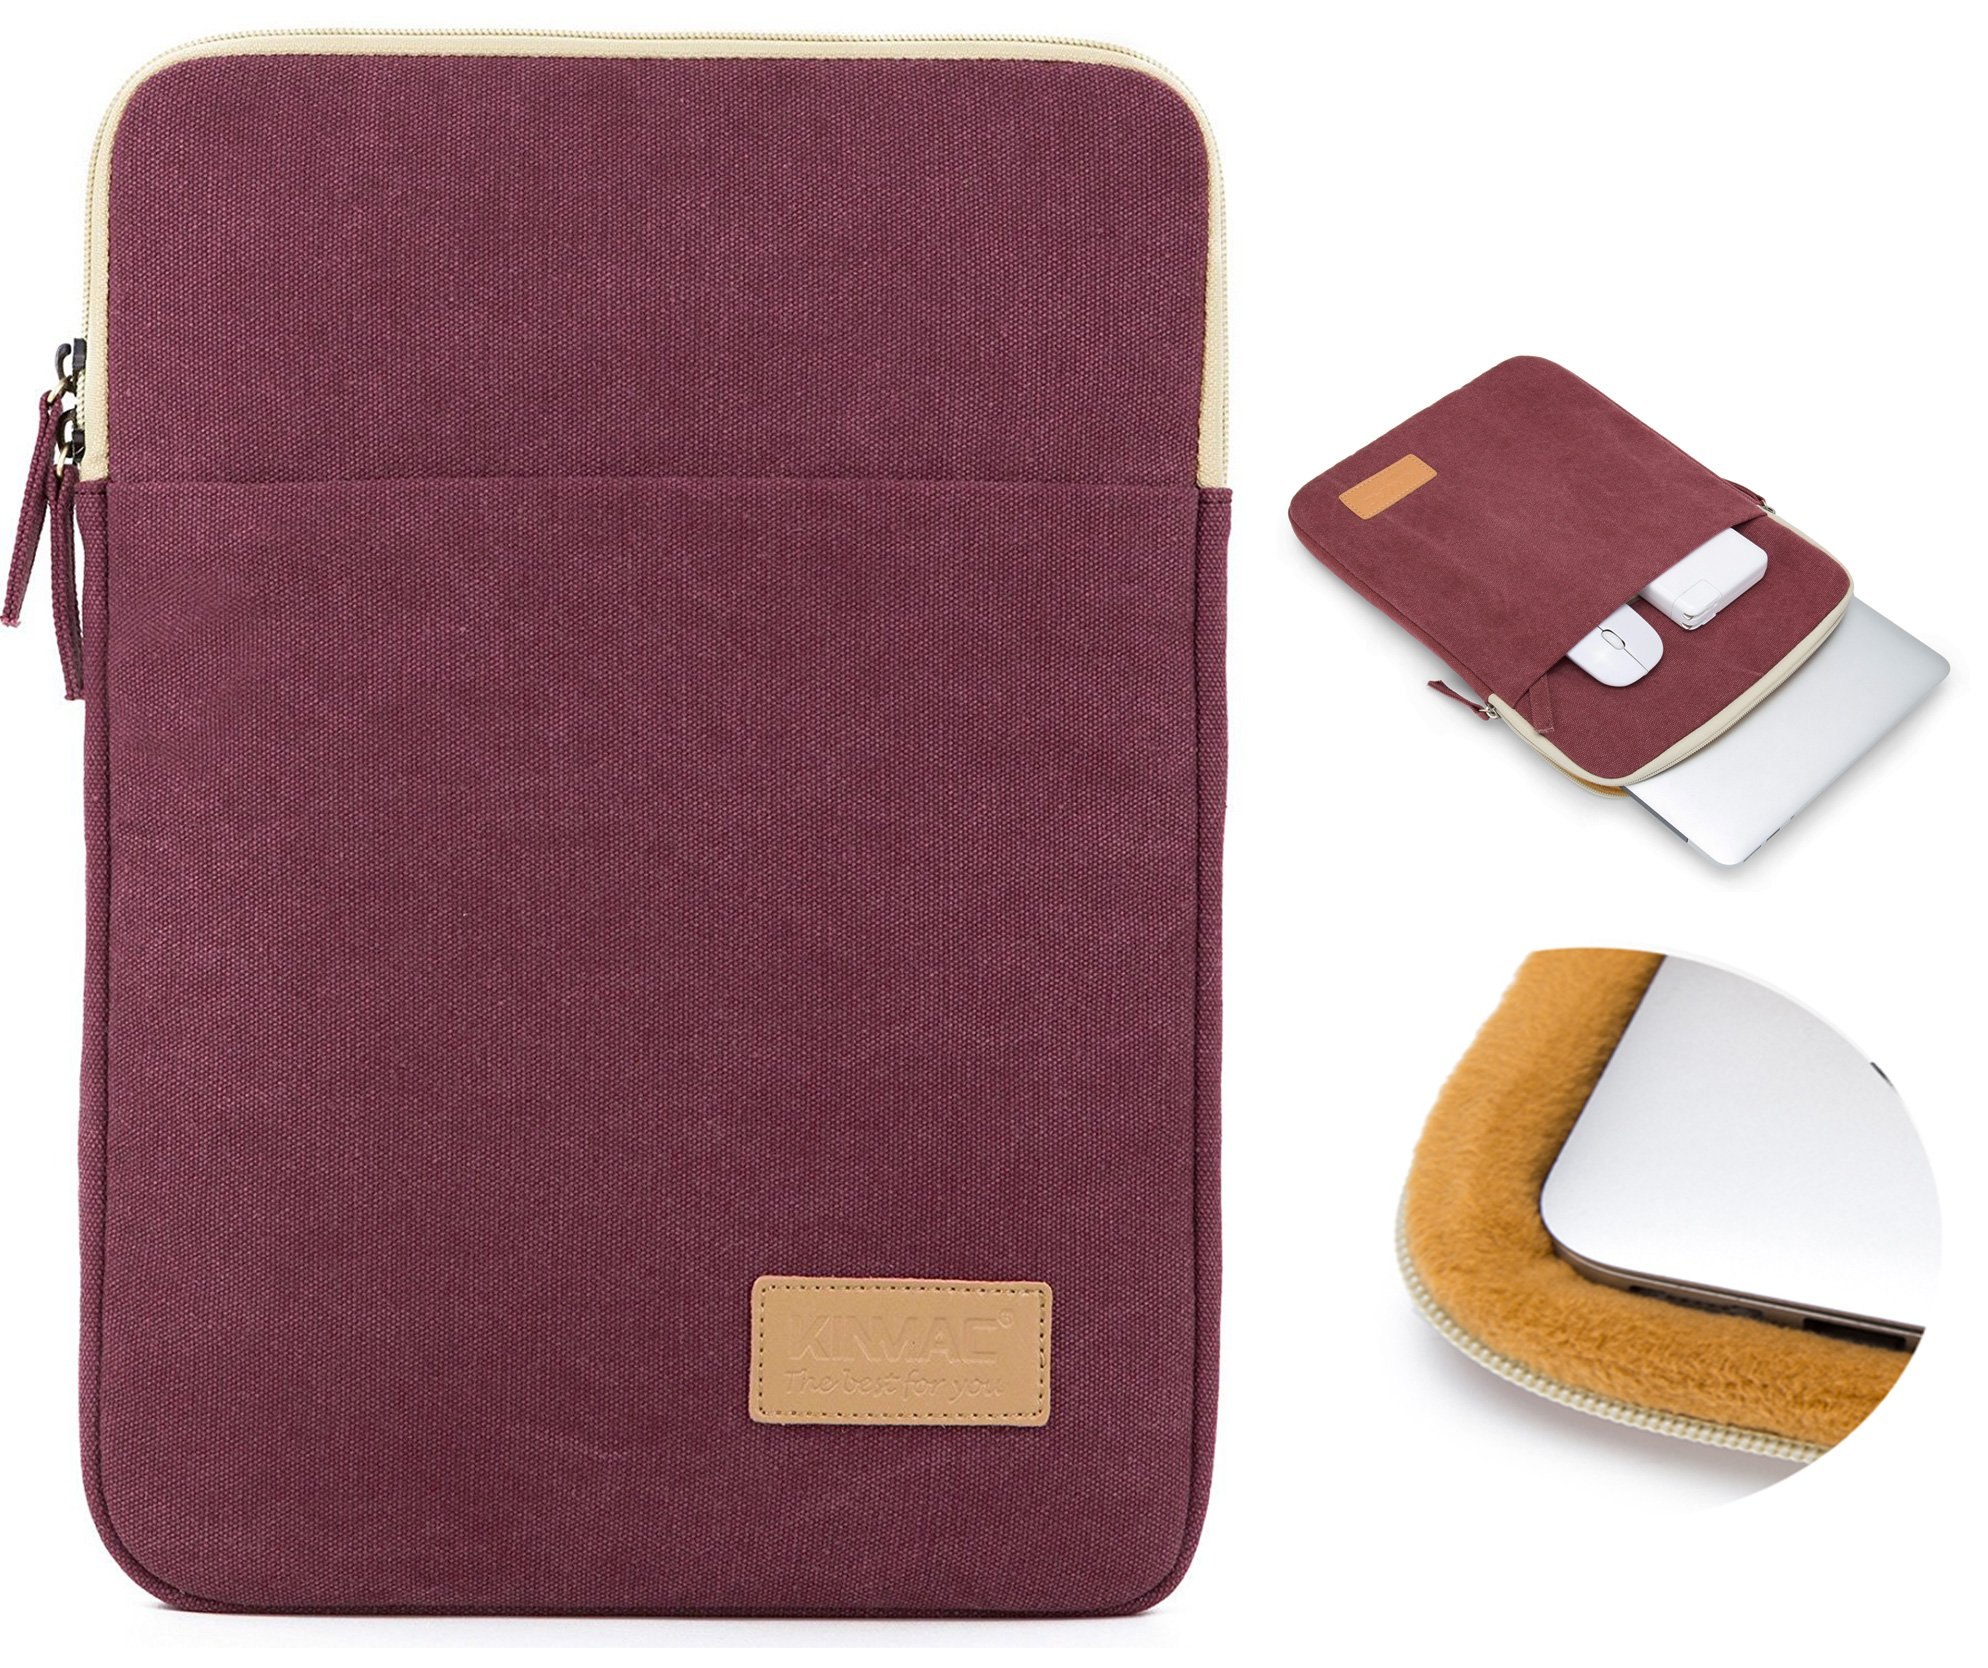 Kinmac Wine Red Color 360 degree protective Canvas Vertical style Waterproof Laptop Sleeve with Pocket for 14 inch 14.0 inch laptop by Kinmac